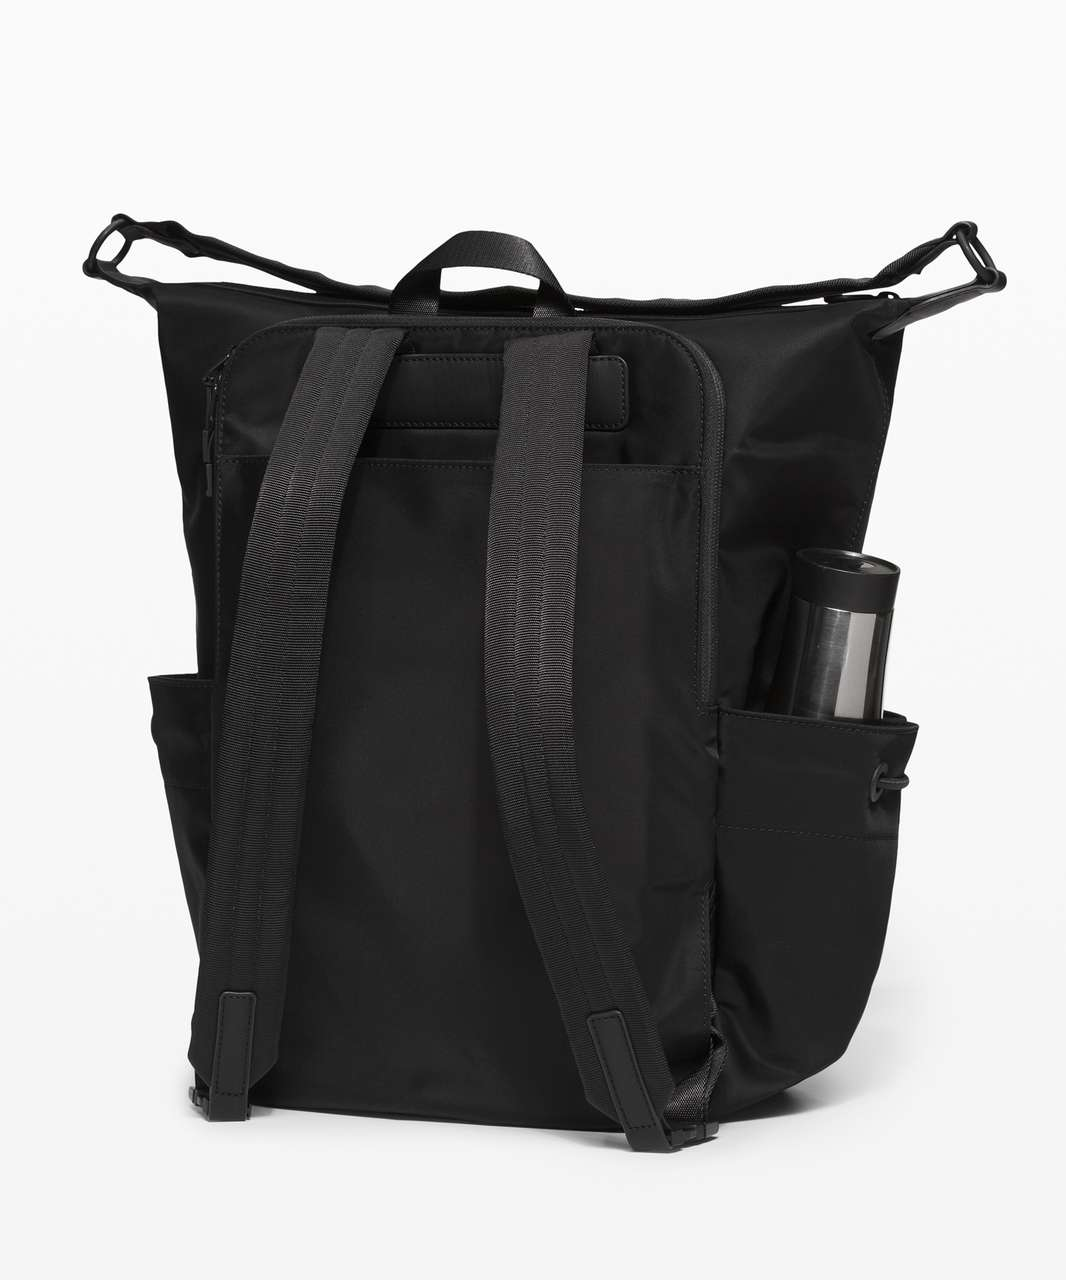 Lululemon Easy Days Backpack 20L - Black